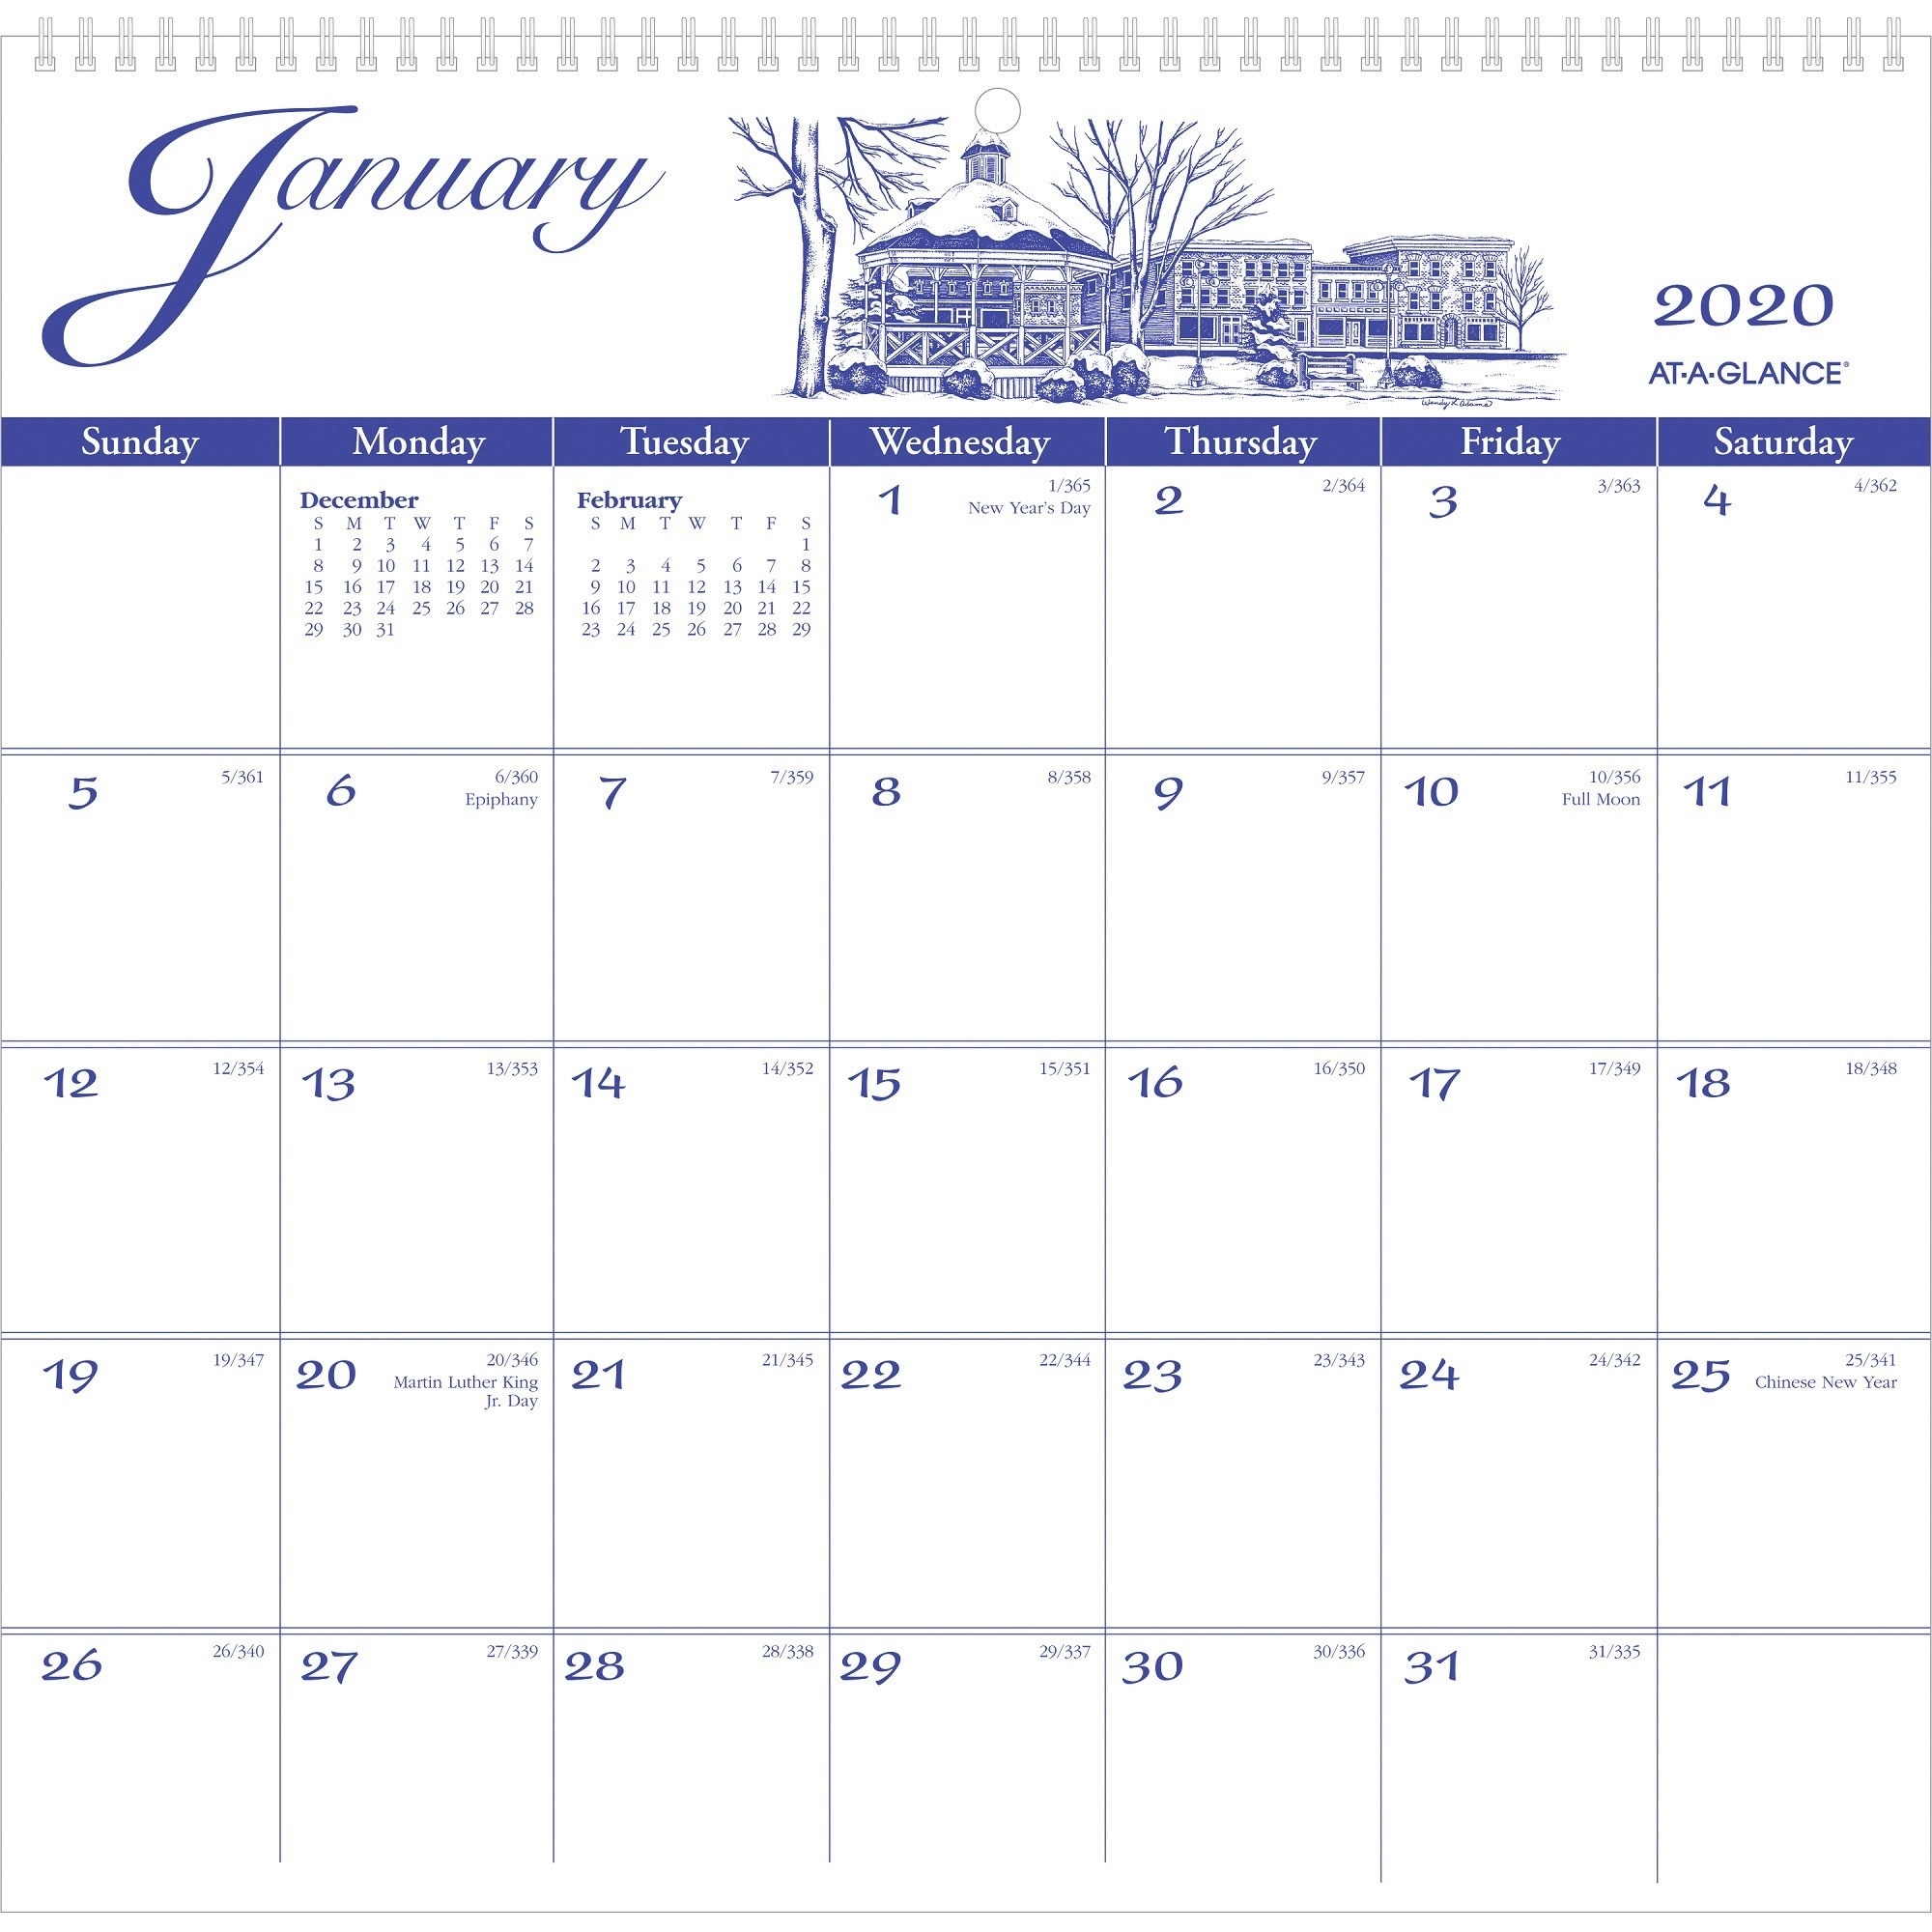 At-A-Glance Illustrators Edition Monthly Wall Calendar - Yes - Monthly - 1  Year - January 2020 Till December 2020 - 1 Month Single Page Layout - 11